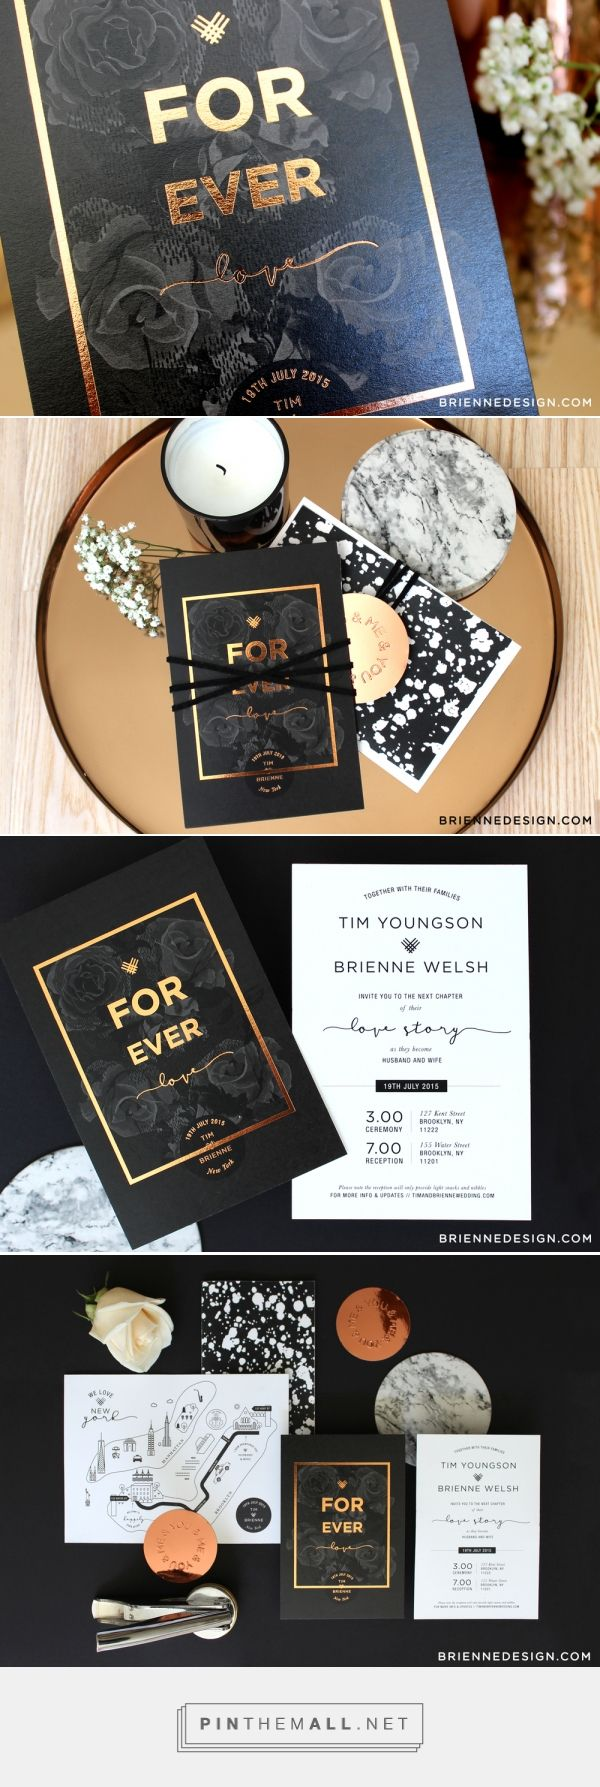 Wedding Invitation Design by Brienne Design | Fivestar Branding Agency – Design and Branding Agency & Curated Inspiration Gallery